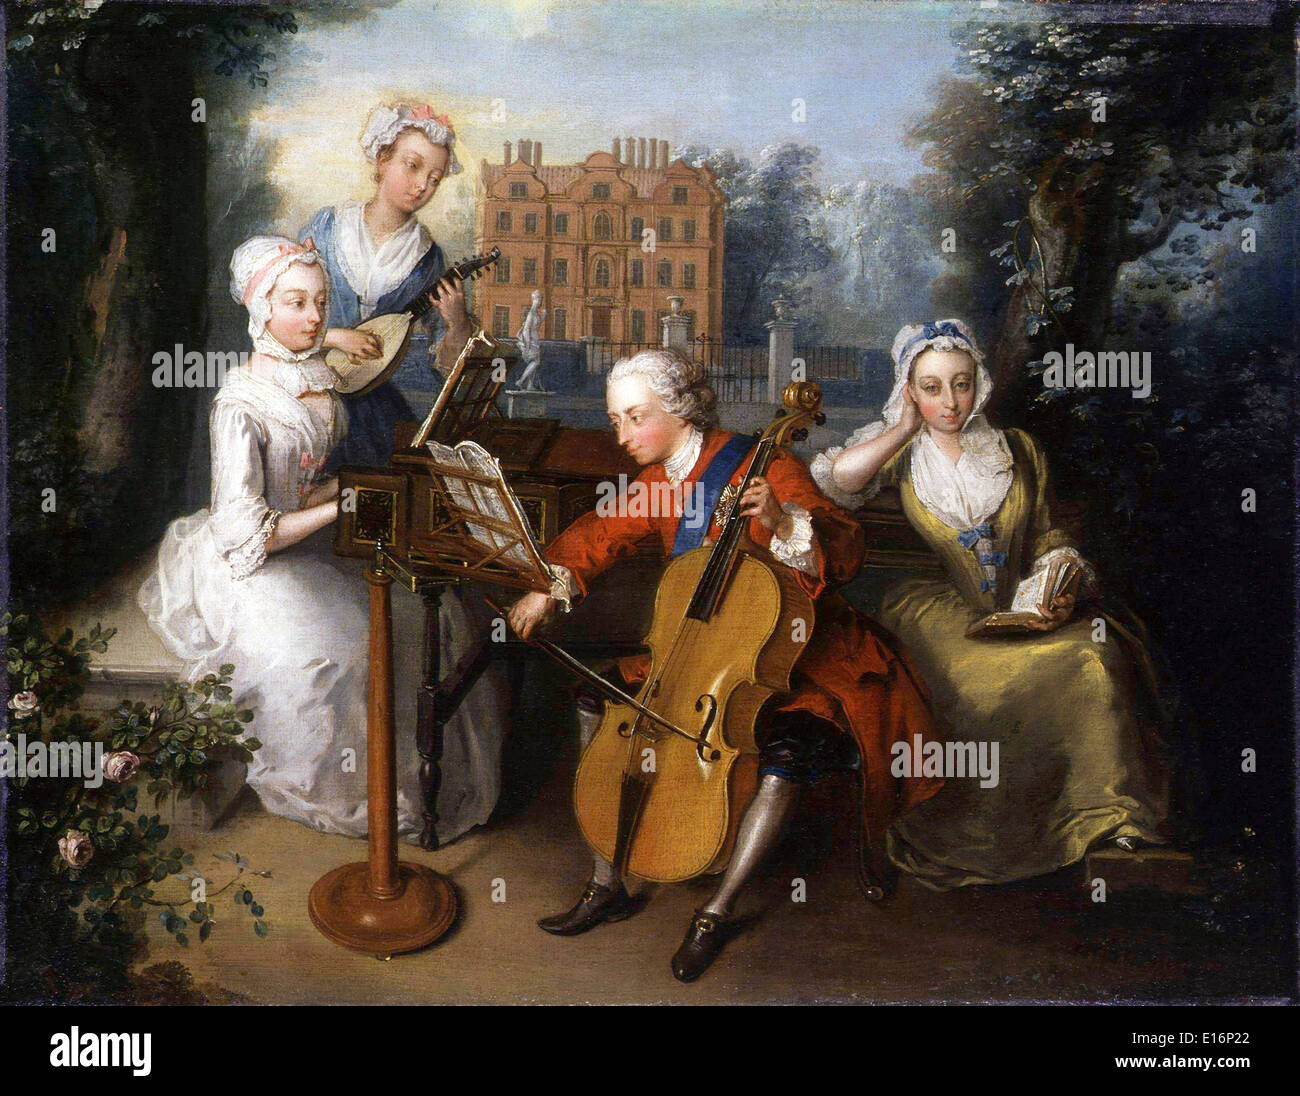 Frederick, Prince of Wales and his sisters (The Music Party) by Philip Mercier, 1733 - Stock Image